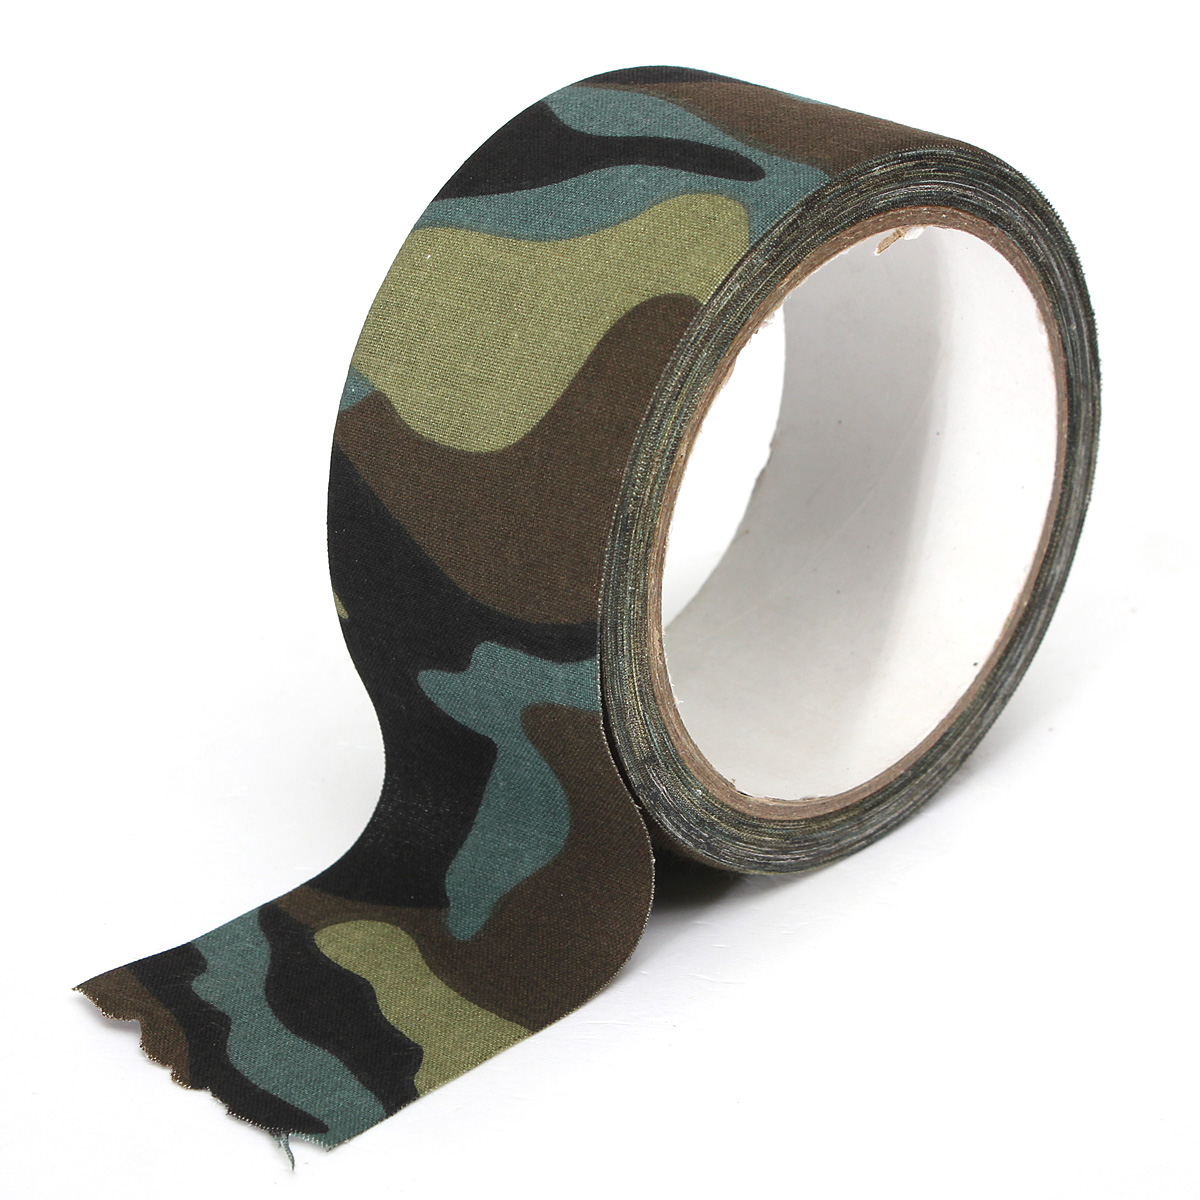 10M Camouflage Wrap Tape Camo Tape Duct Waterproof Mutifunctional Fabric Camping Stealth Tape